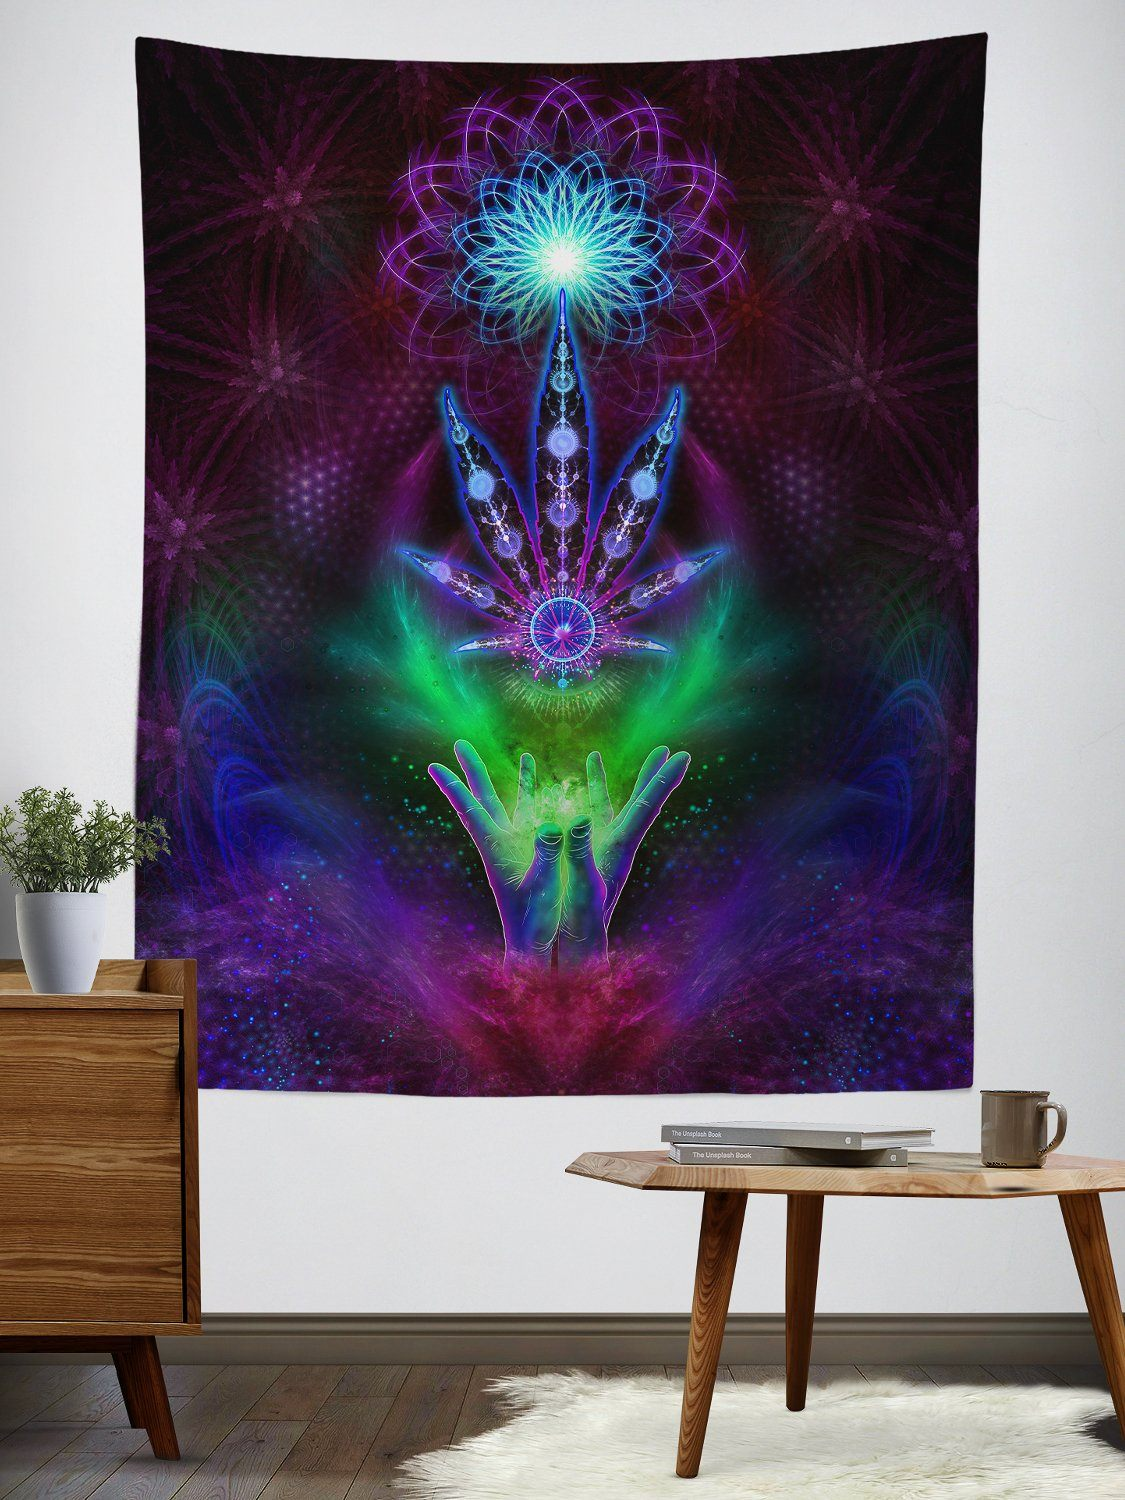 420 Lover Tapestry Tapestry Electro Threads